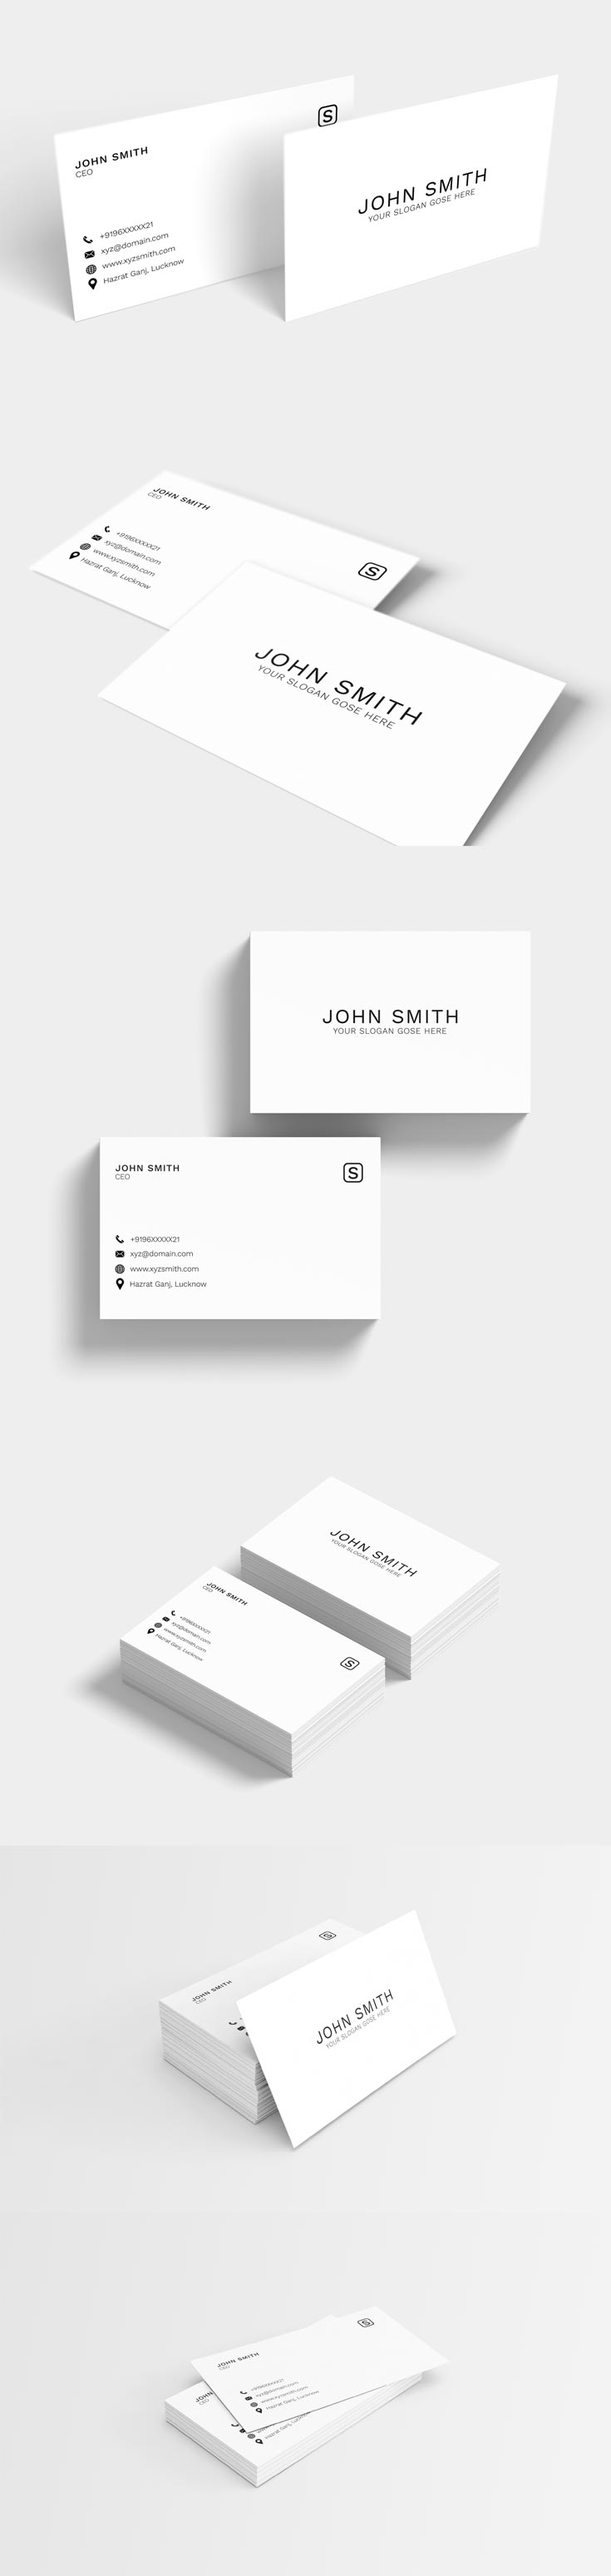 Free Simple Minimal Business Card — Creativetacos